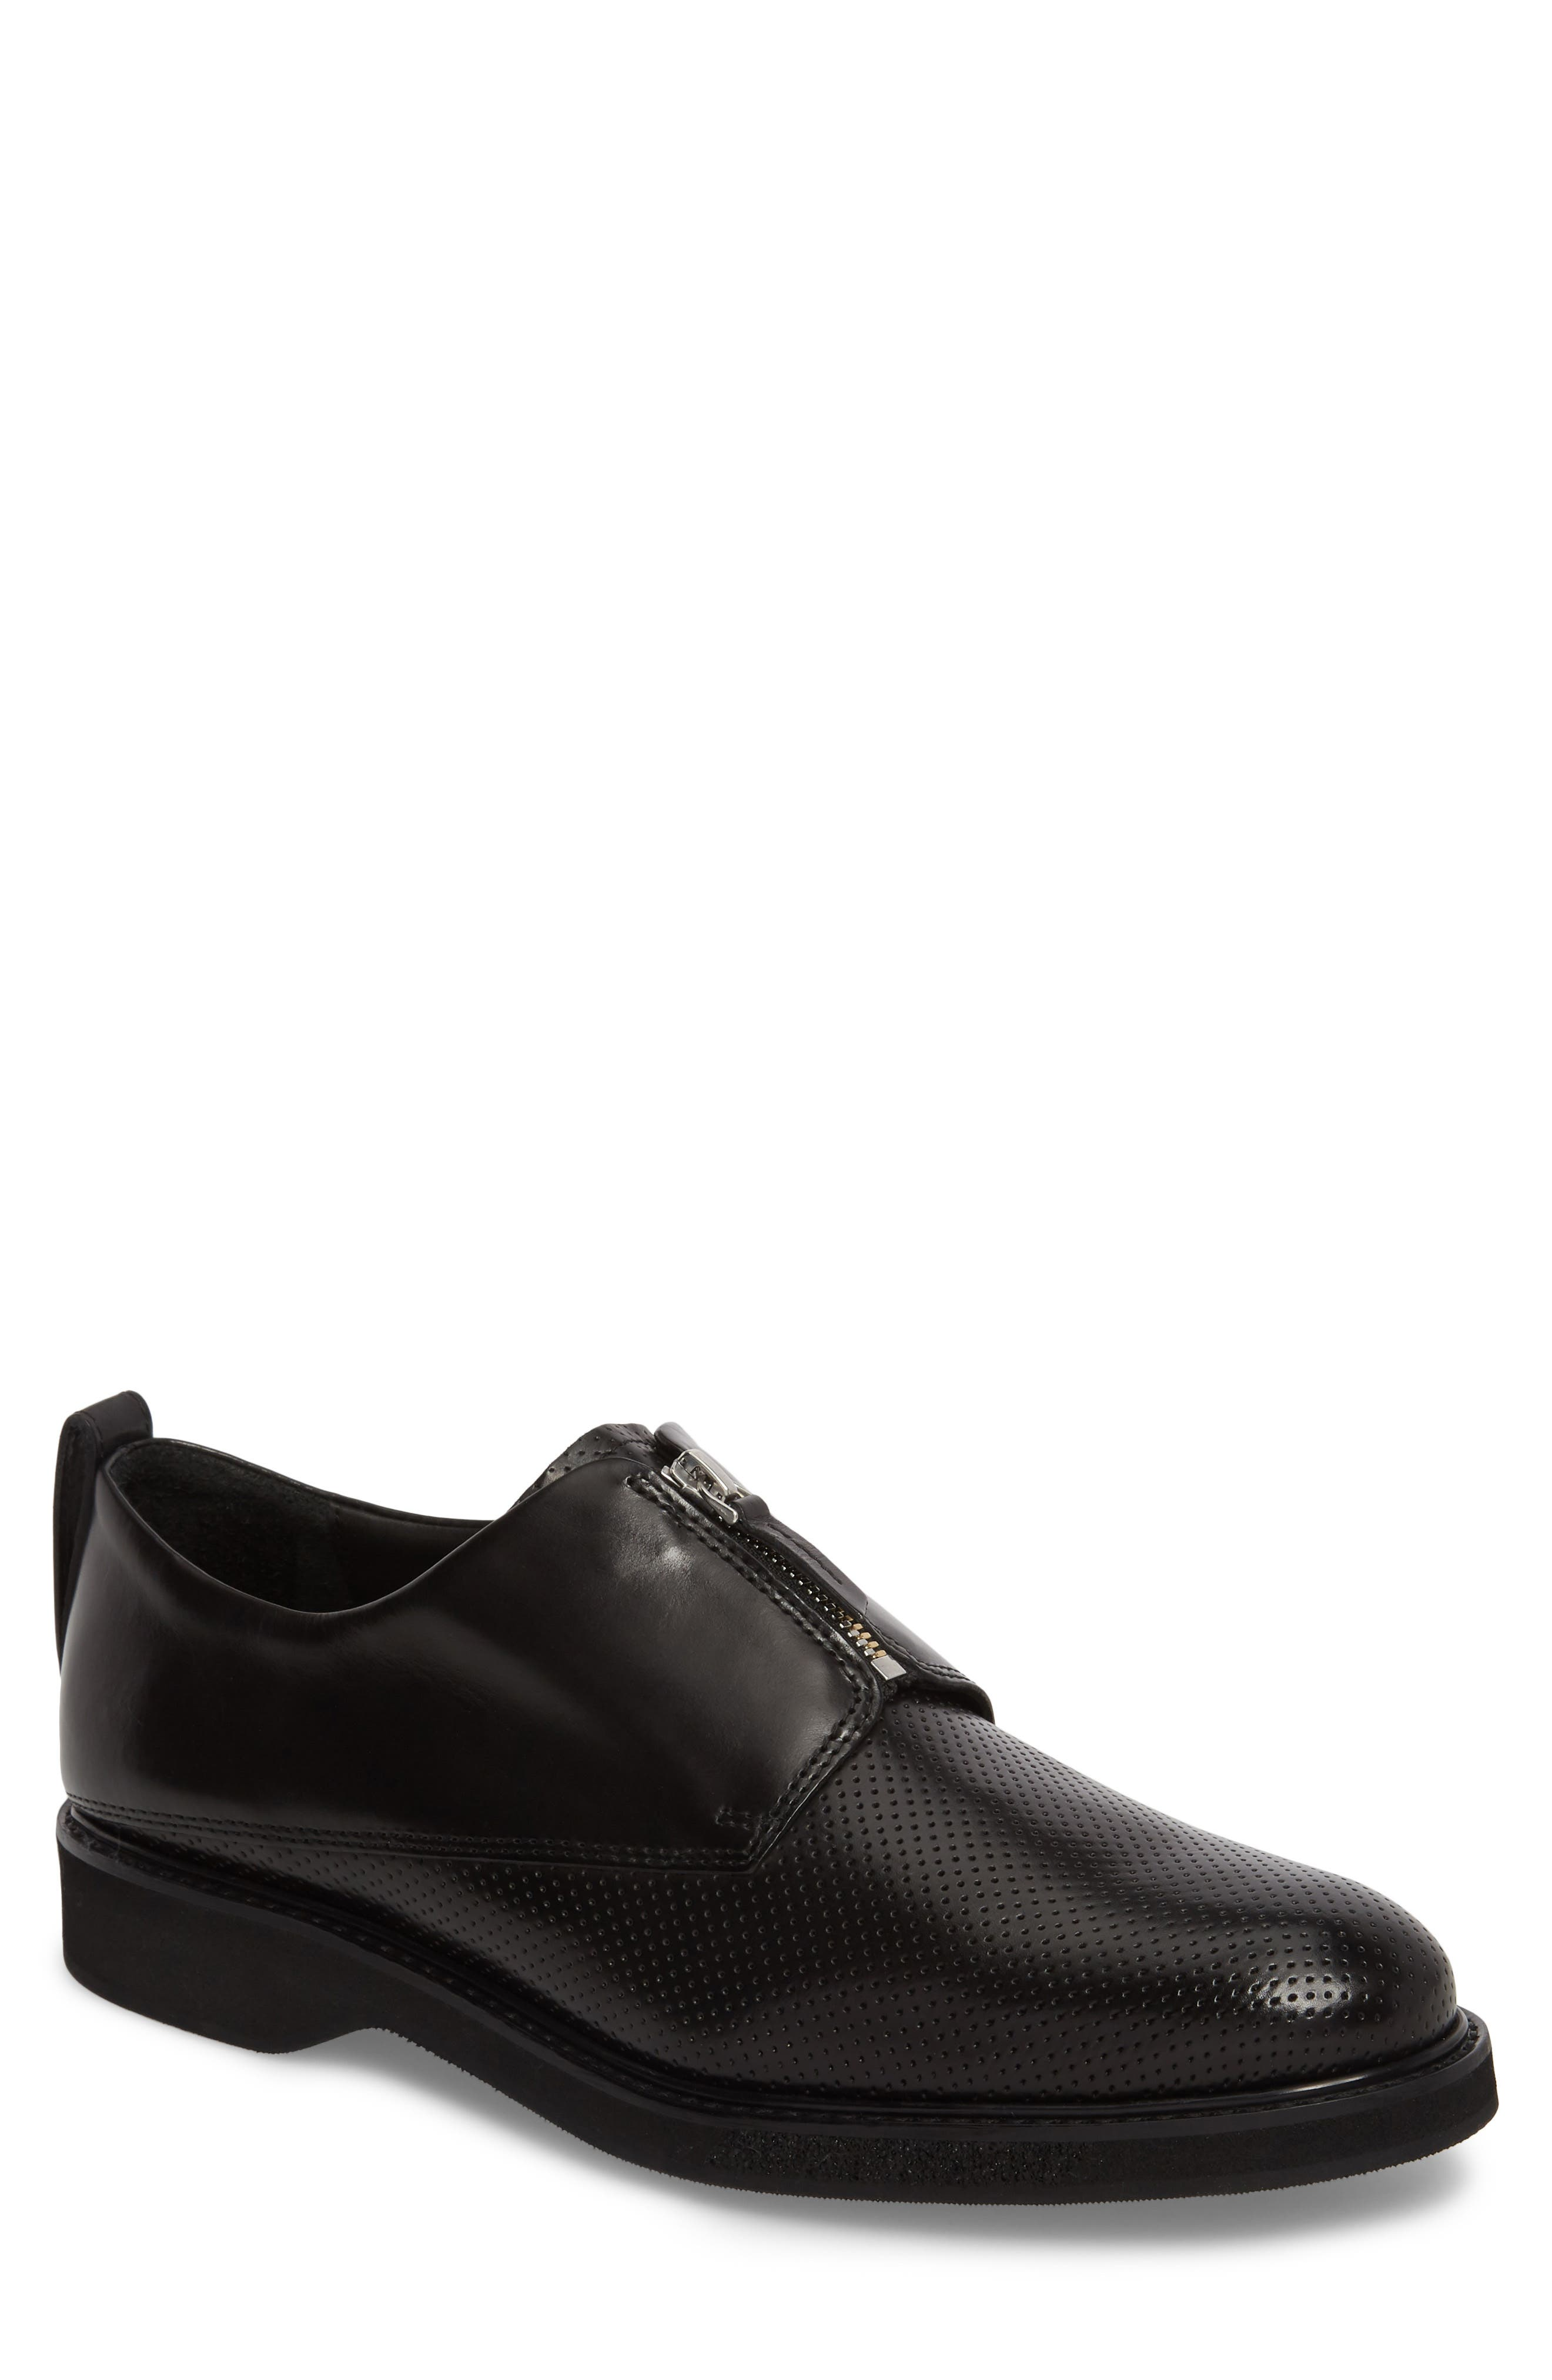 Zipped Derby Shoe,                             Main thumbnail 1, color,                             Multi Perforated Black/ Black